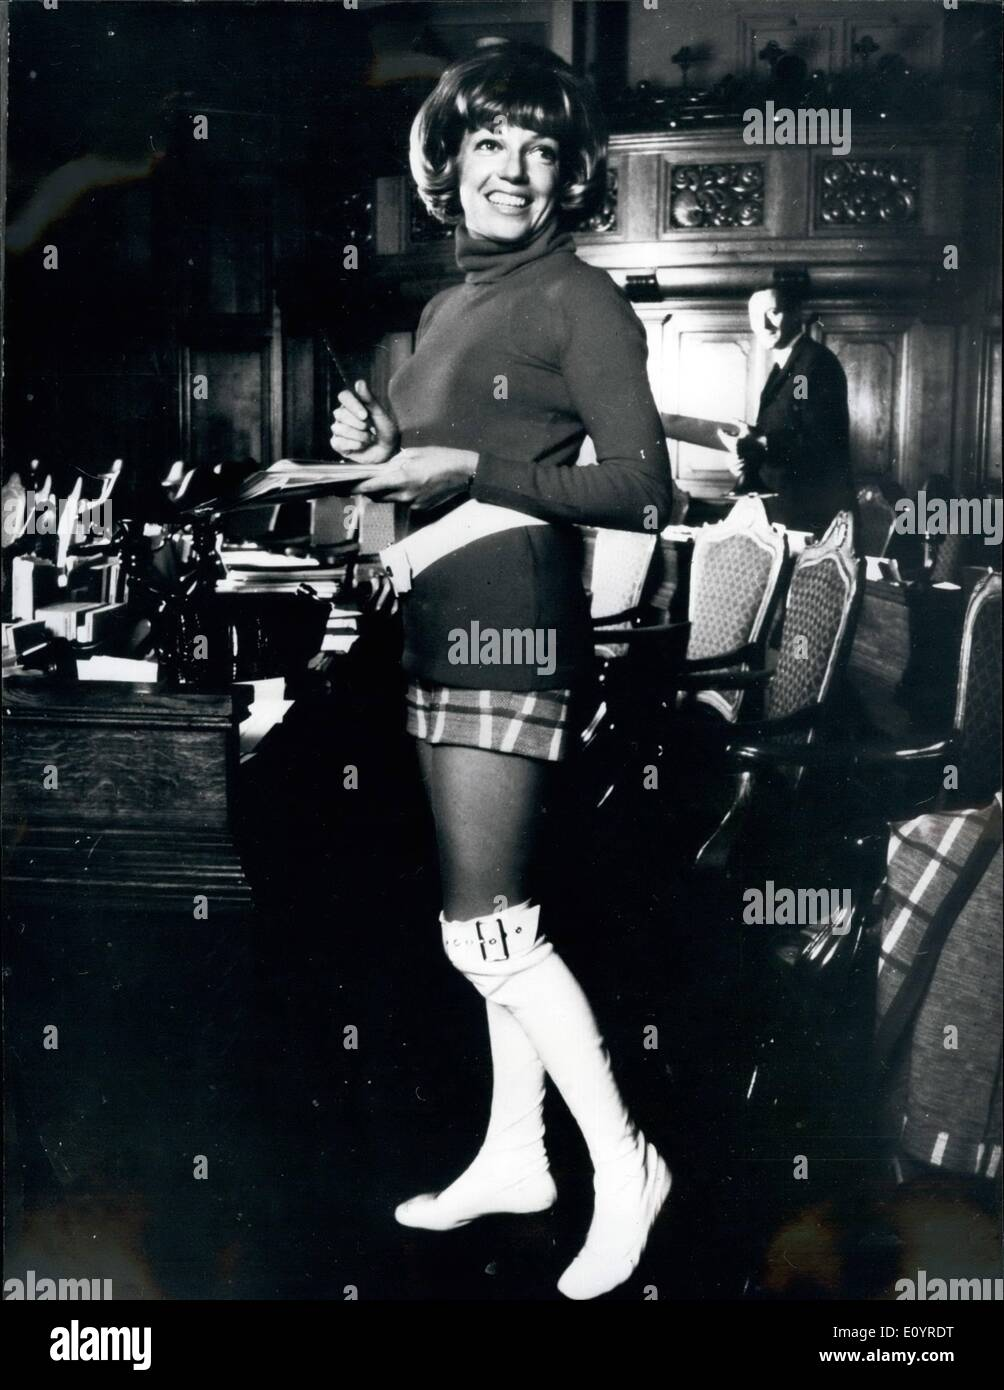 Apr. 04, 1971 - Lene - Member Of Danish Parliament - In Hot Pants: The youngest female member of Danish Parliament, Lene Bro (labour), really drew her college's attention to herself, when she started wearing hot pants in Parliament. When, in 1968 Lene Bro, who is married to Knud Bro (Conservative) showed up in mini-dresses, many members formed the idea that she had no respect for Parliament. But Lene says: ''I regard Parliament as work and work best with clothes suitable for me - I never dream of getting clothes special for my work - Stock Image